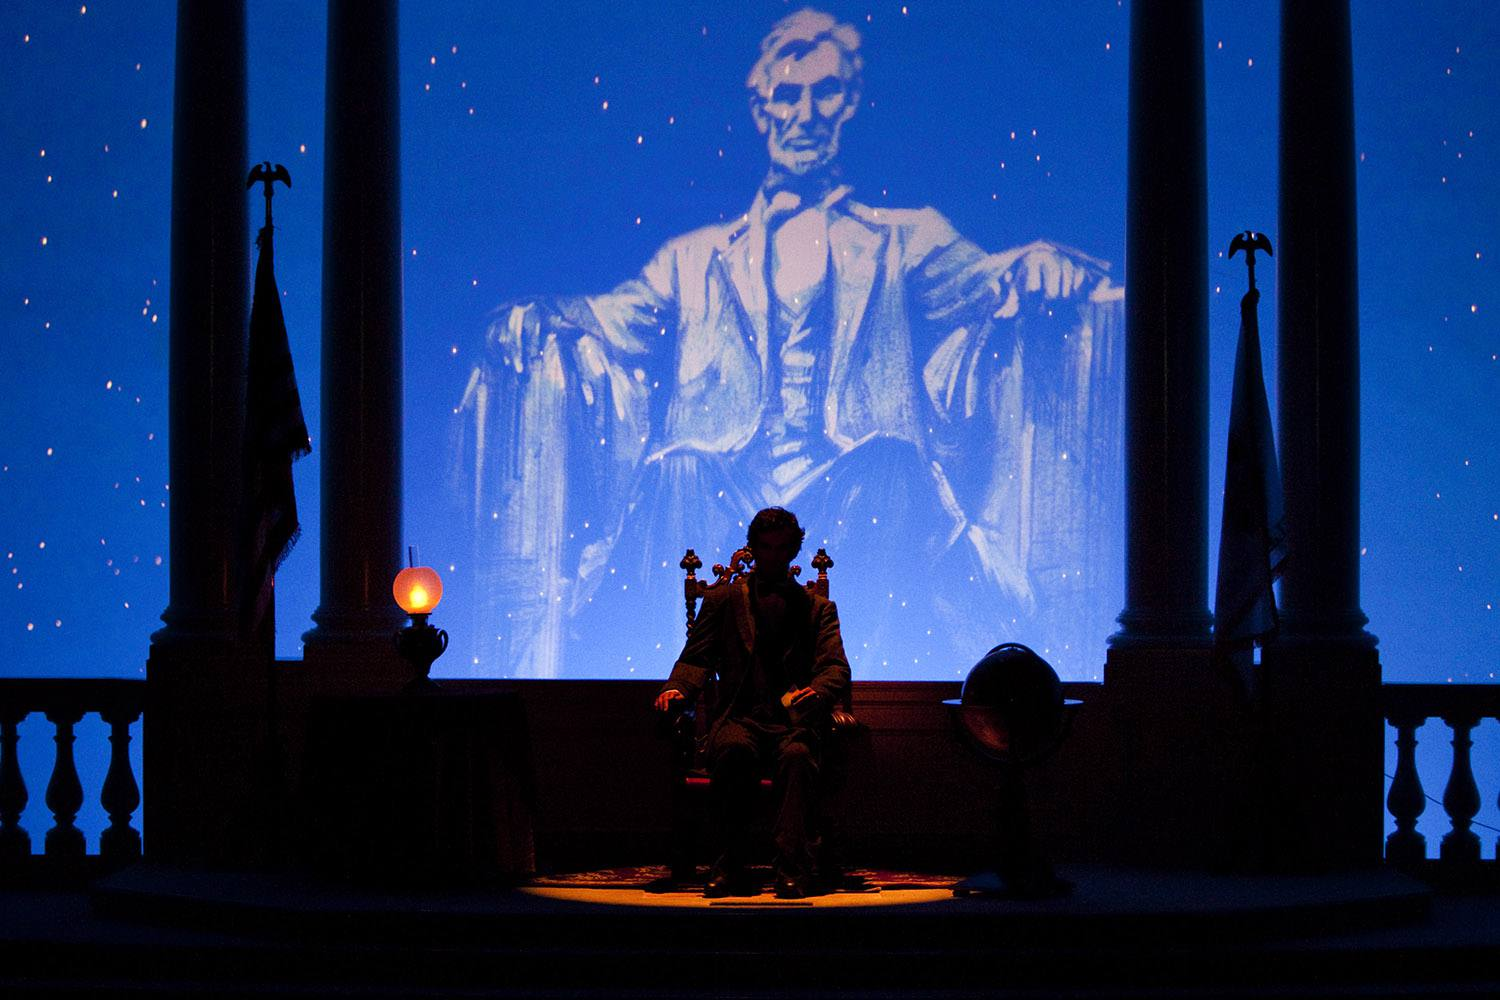 Great Moment with Mr. Lincoln at Disneyland